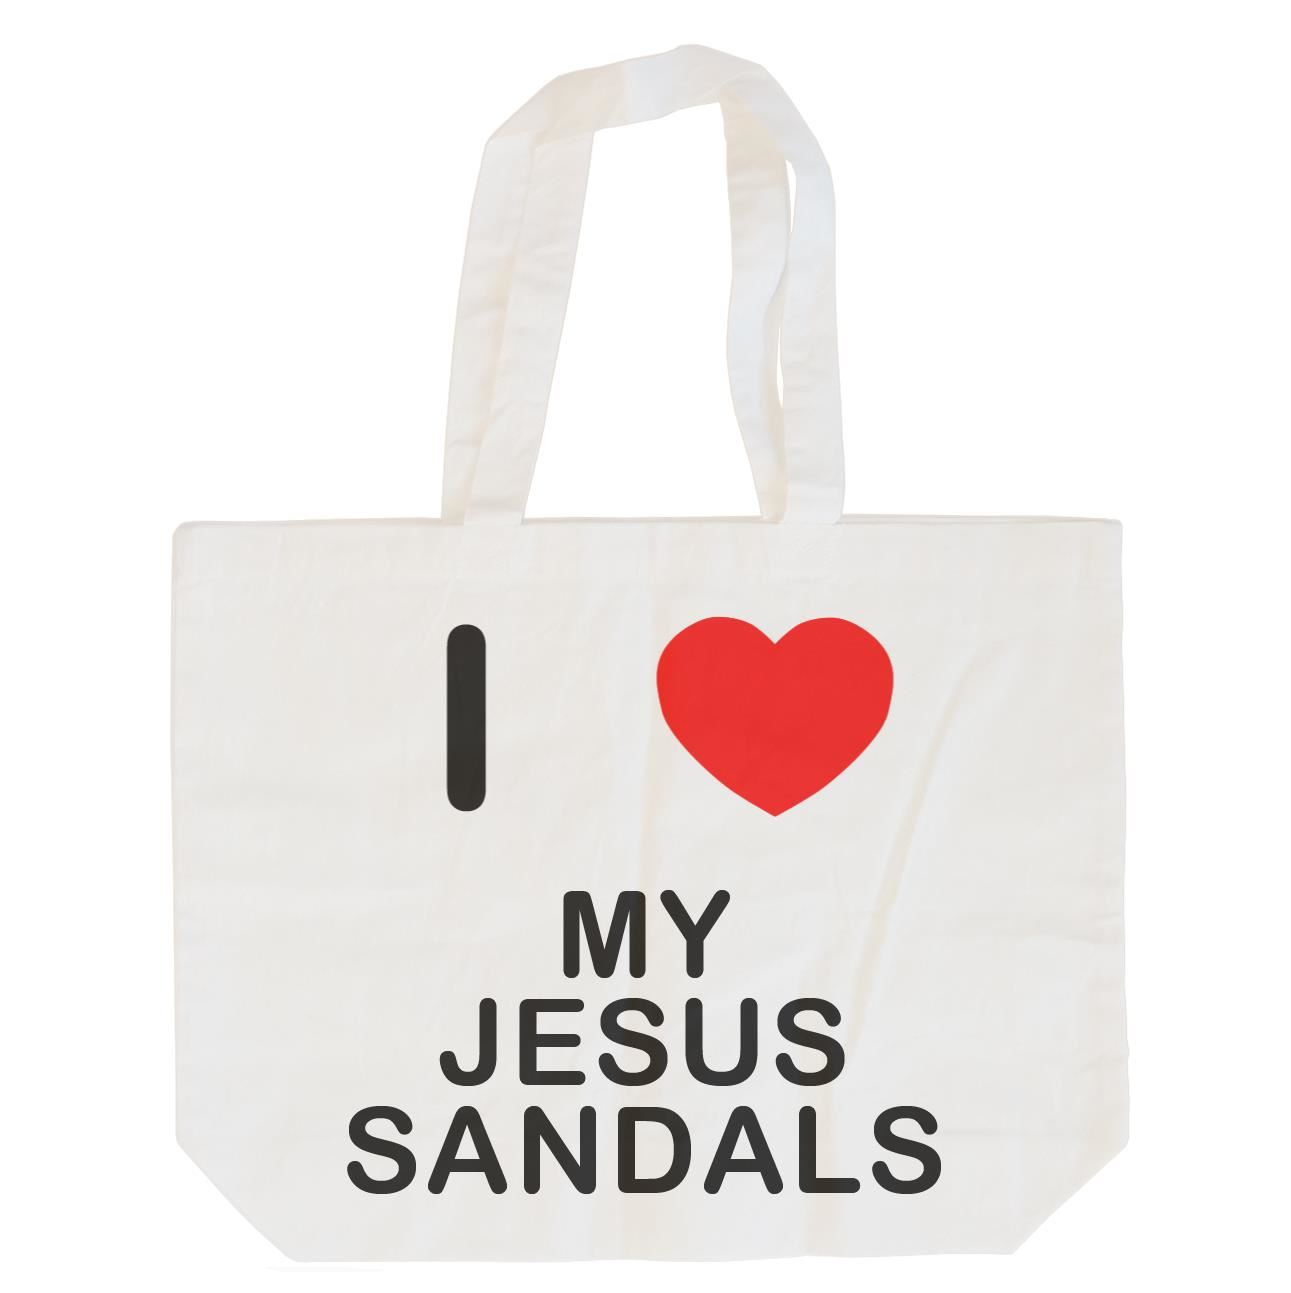 I Love My Jesus Sandals - Cotton Bag | Size choice Tote, Shopper or Sling